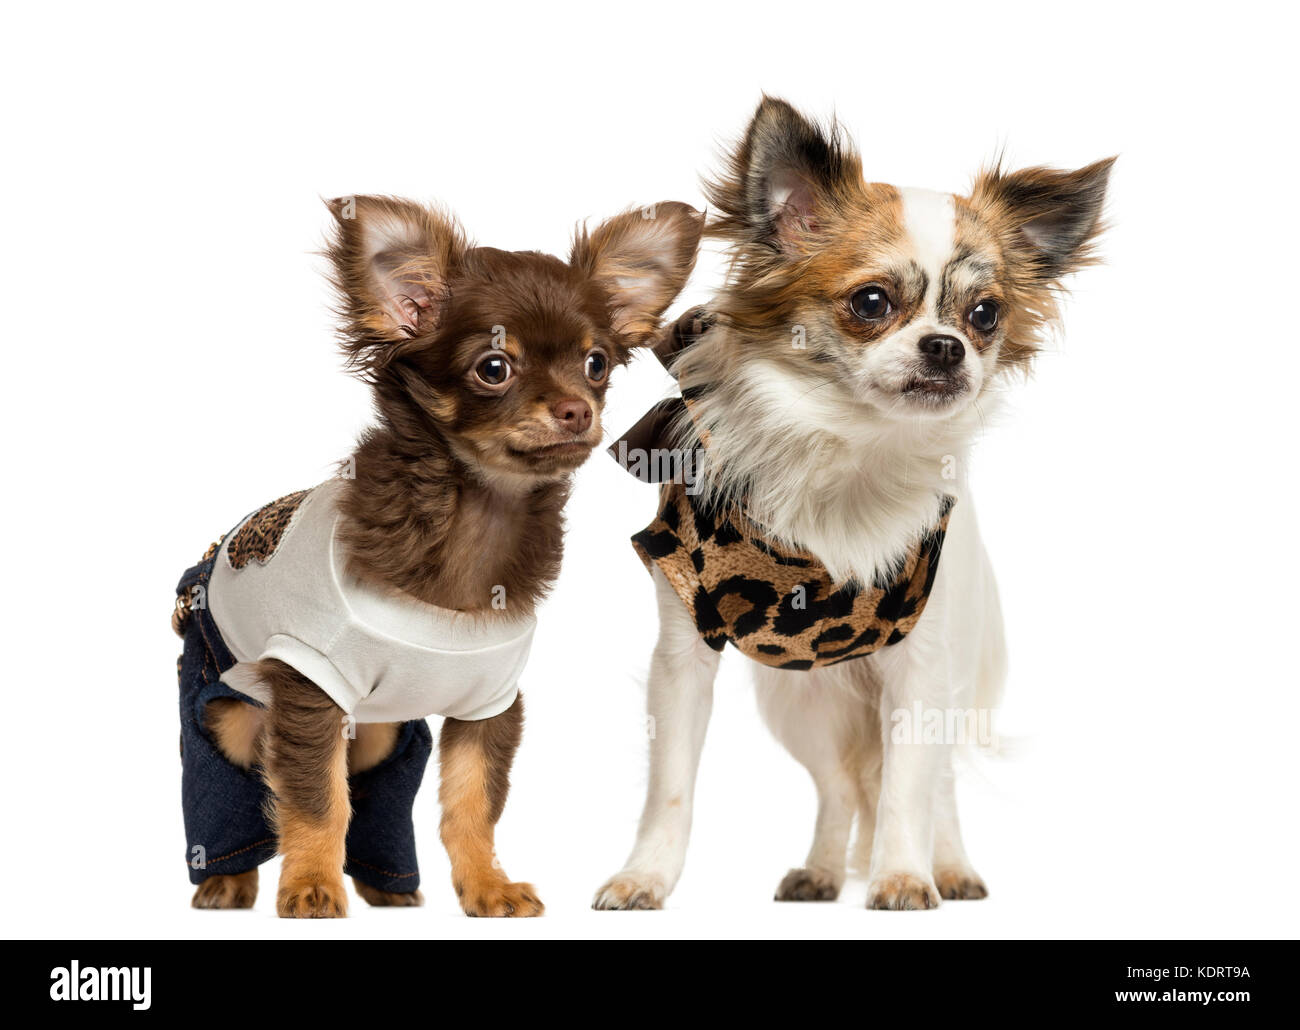 Dressed Up Chihuahua Puppies Standing 3 And 9 Months Old Isolated